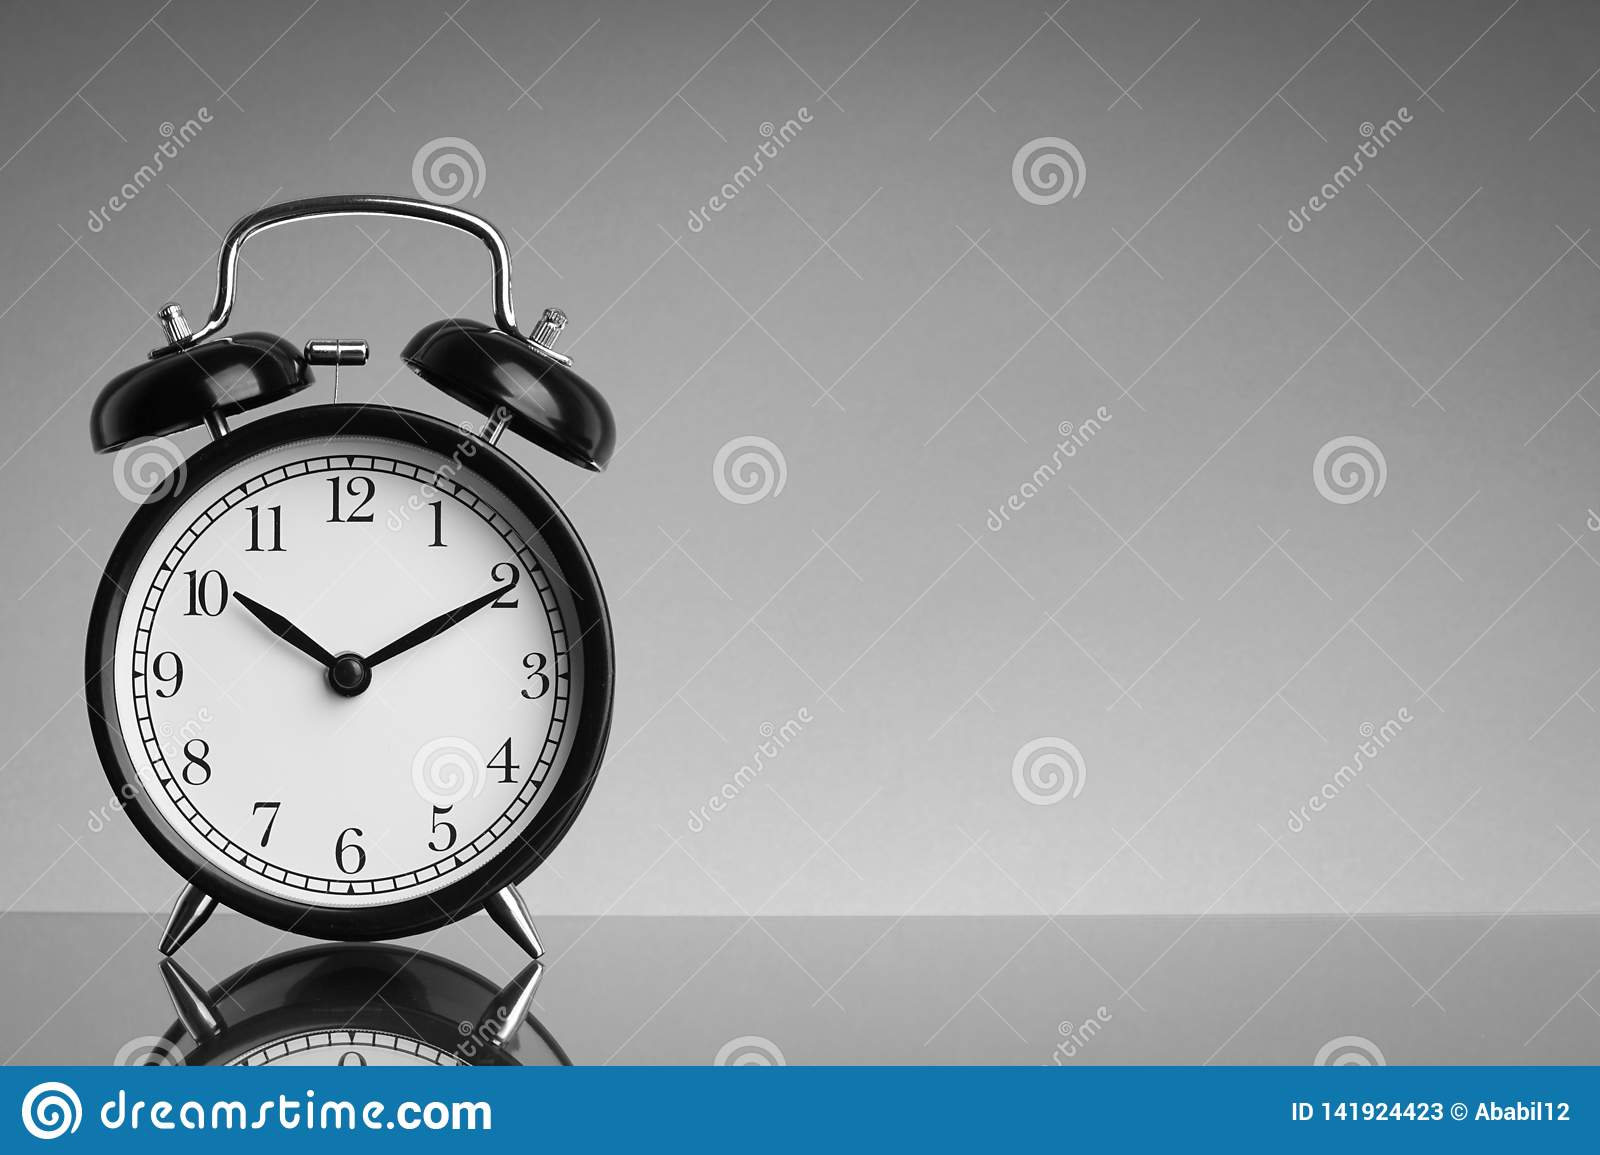 Alarm Clock on black and white background with selective focus and crop fragment